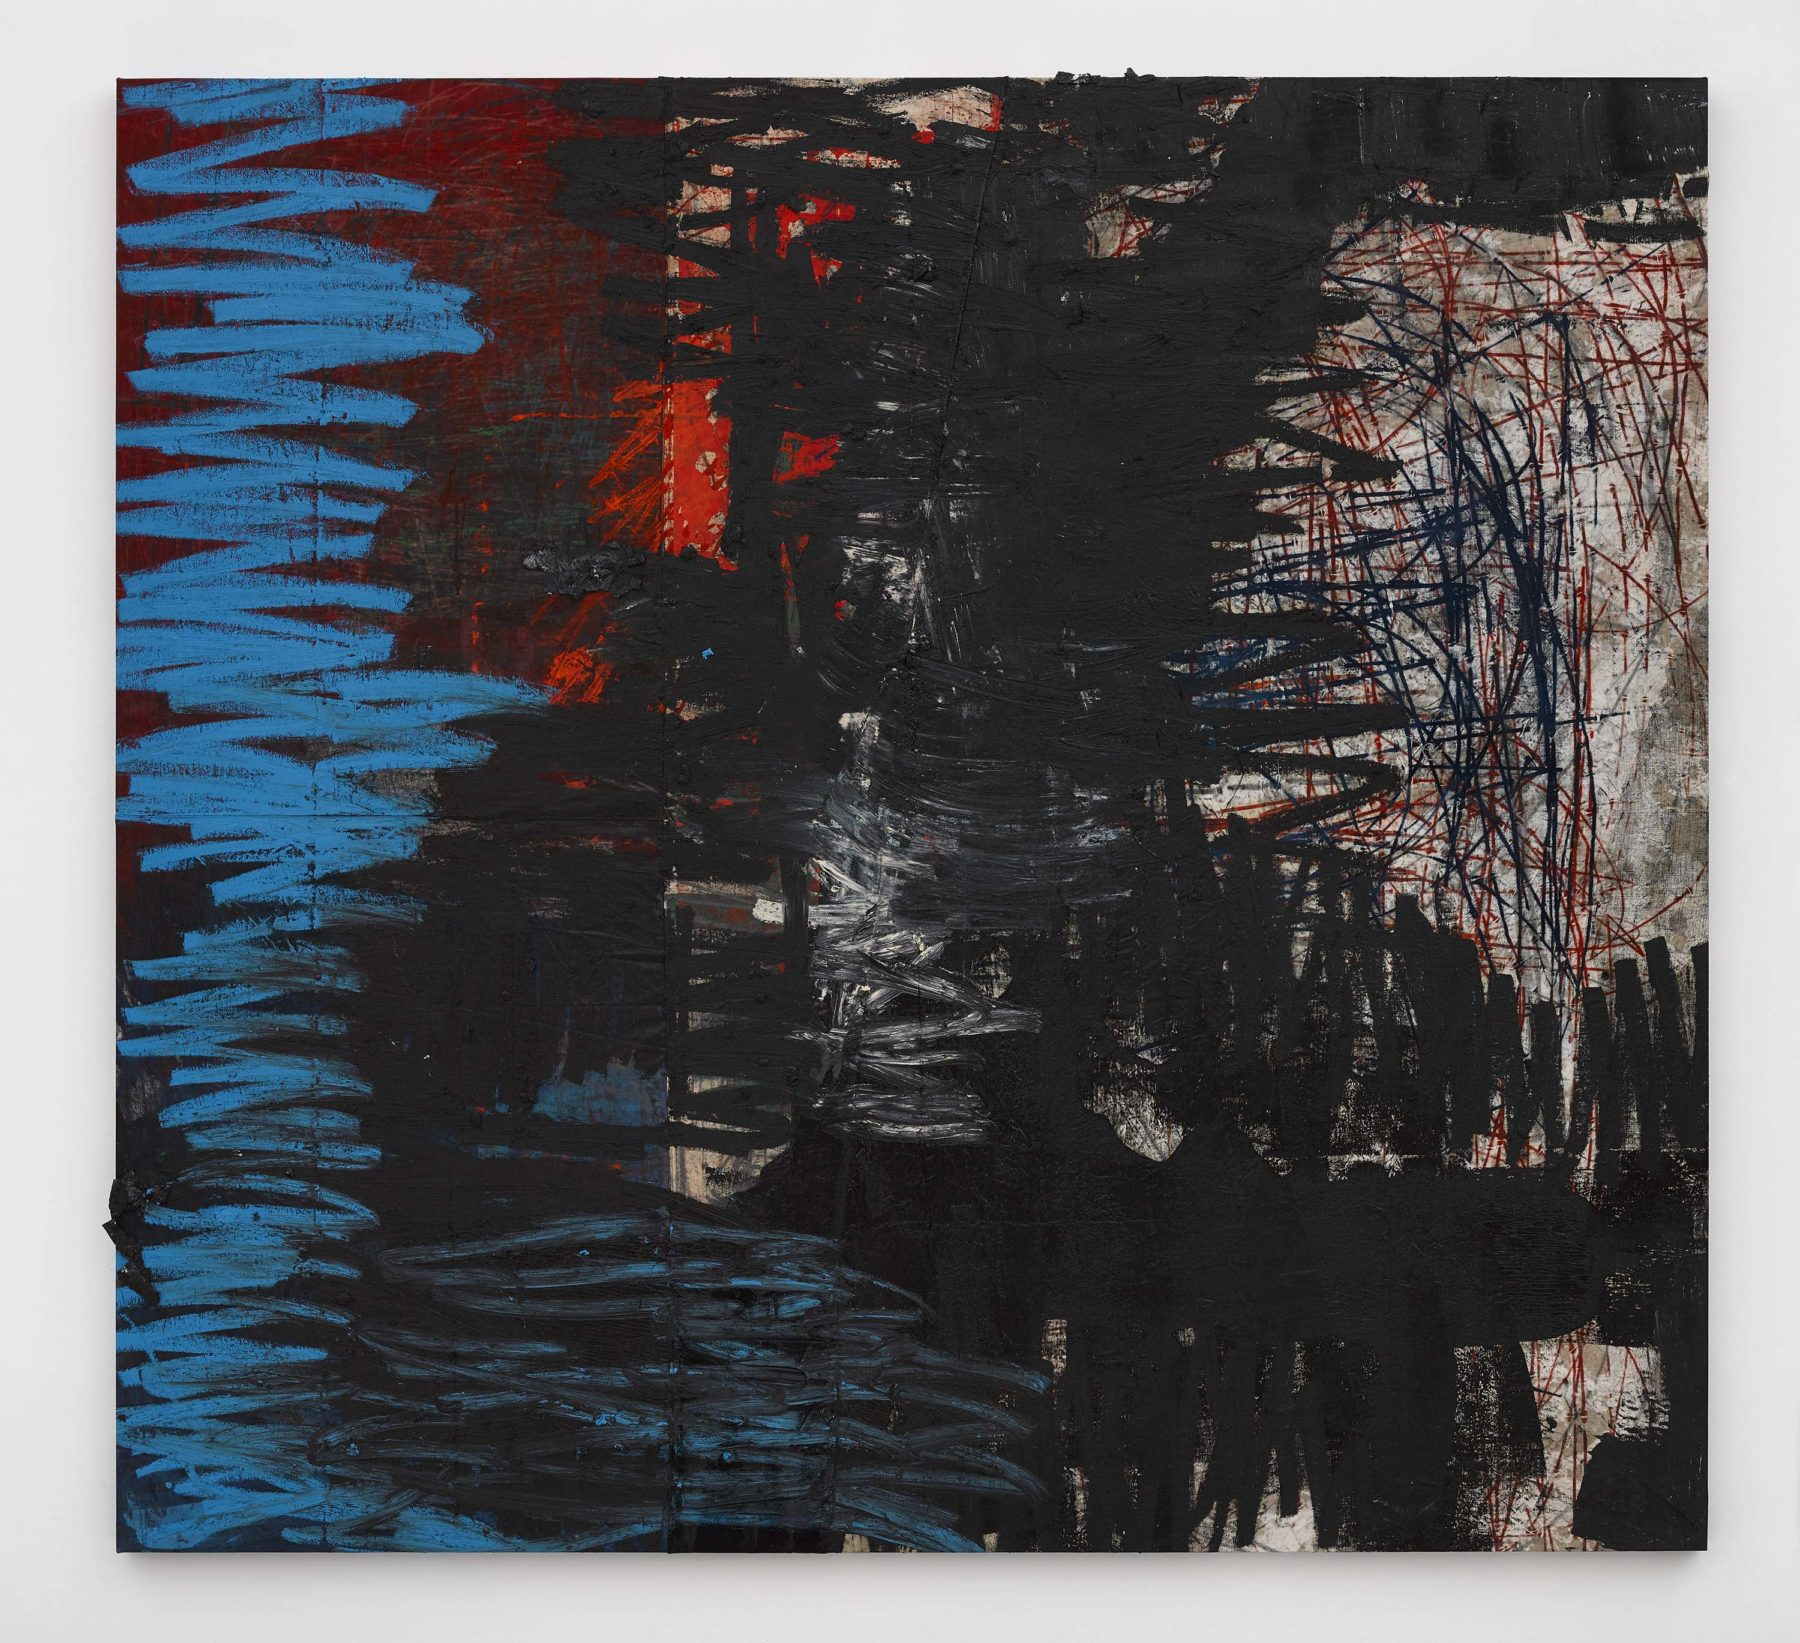 Oscar Murillo, manifestation (2019-2020), oil, oil stick, cotton thread, and graphite on canvas, velvet, and linen, 250 x 270 cm. Courtesy of the artist and David Zwirner